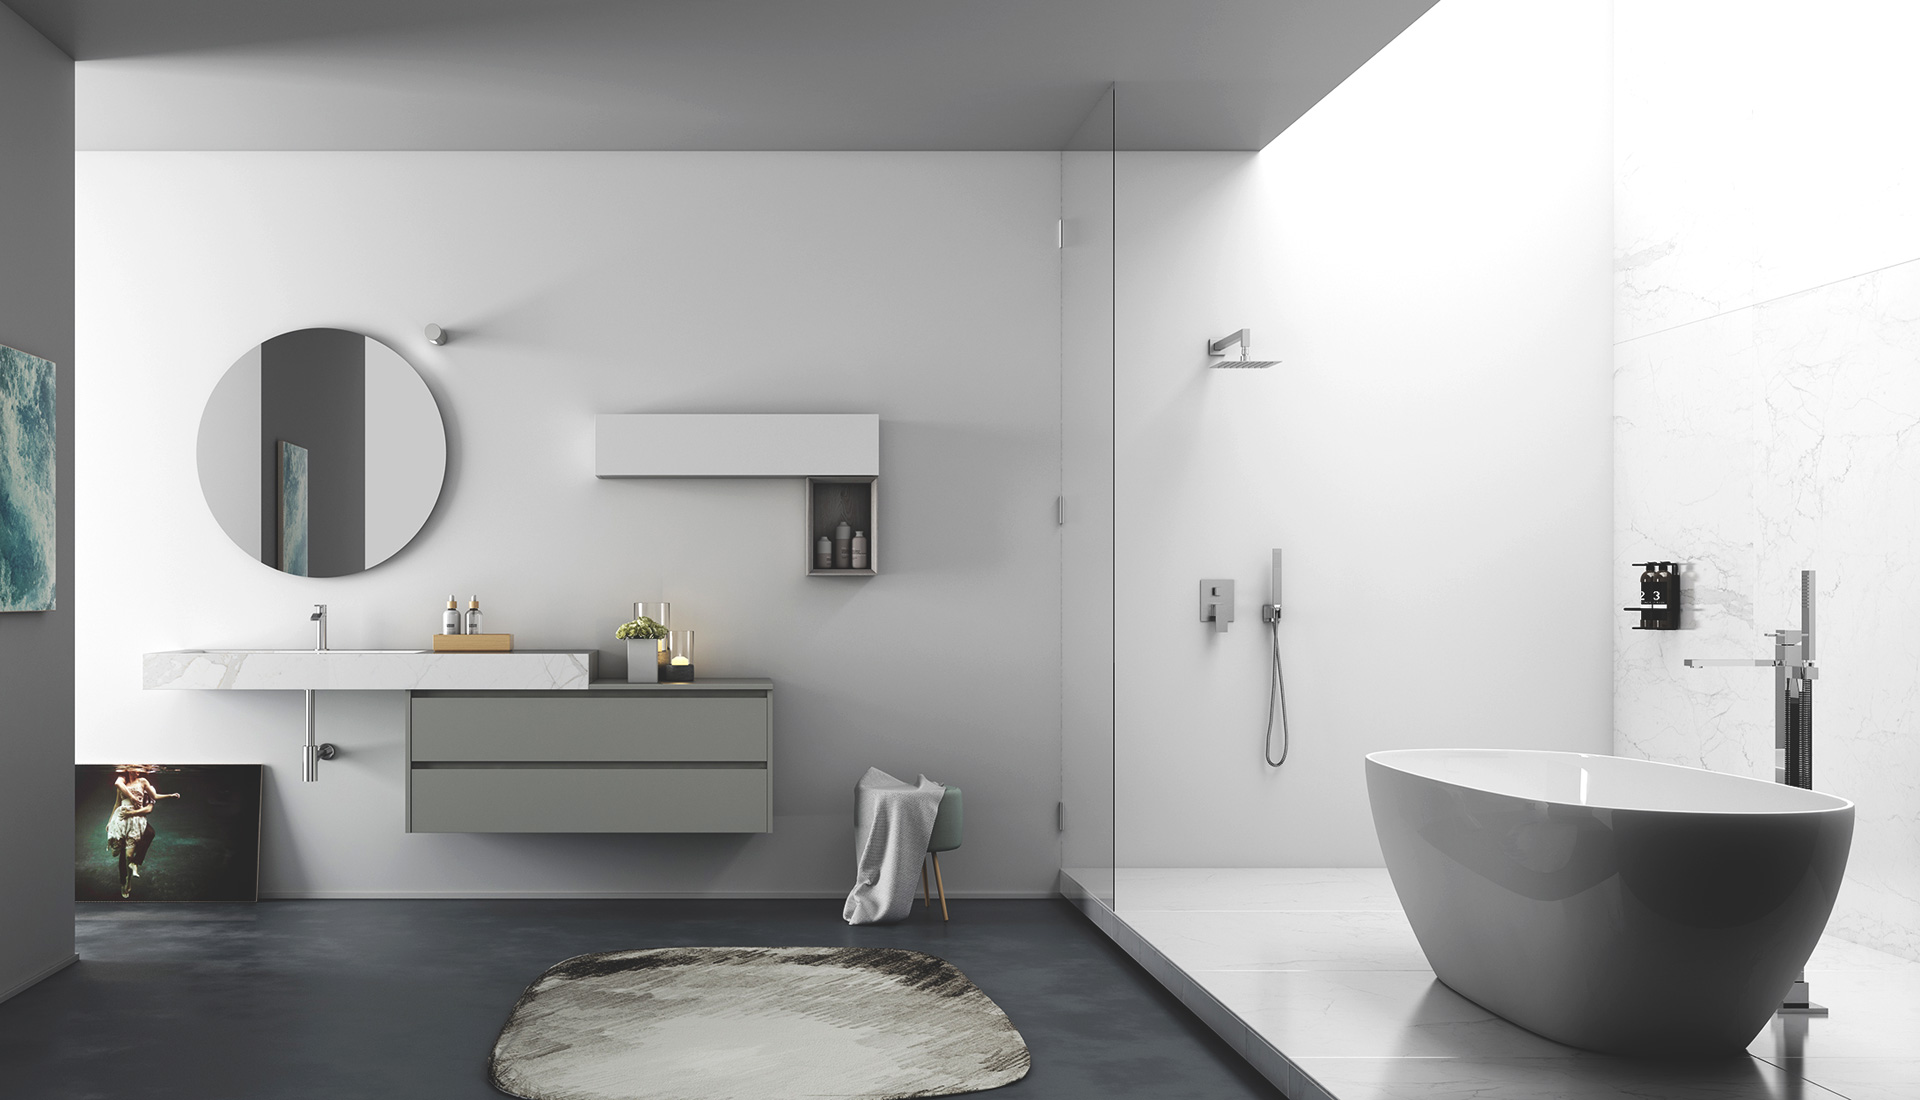 handleless bathroom furniture - puntotre arredobagno - Arredo Bagno Puntotre